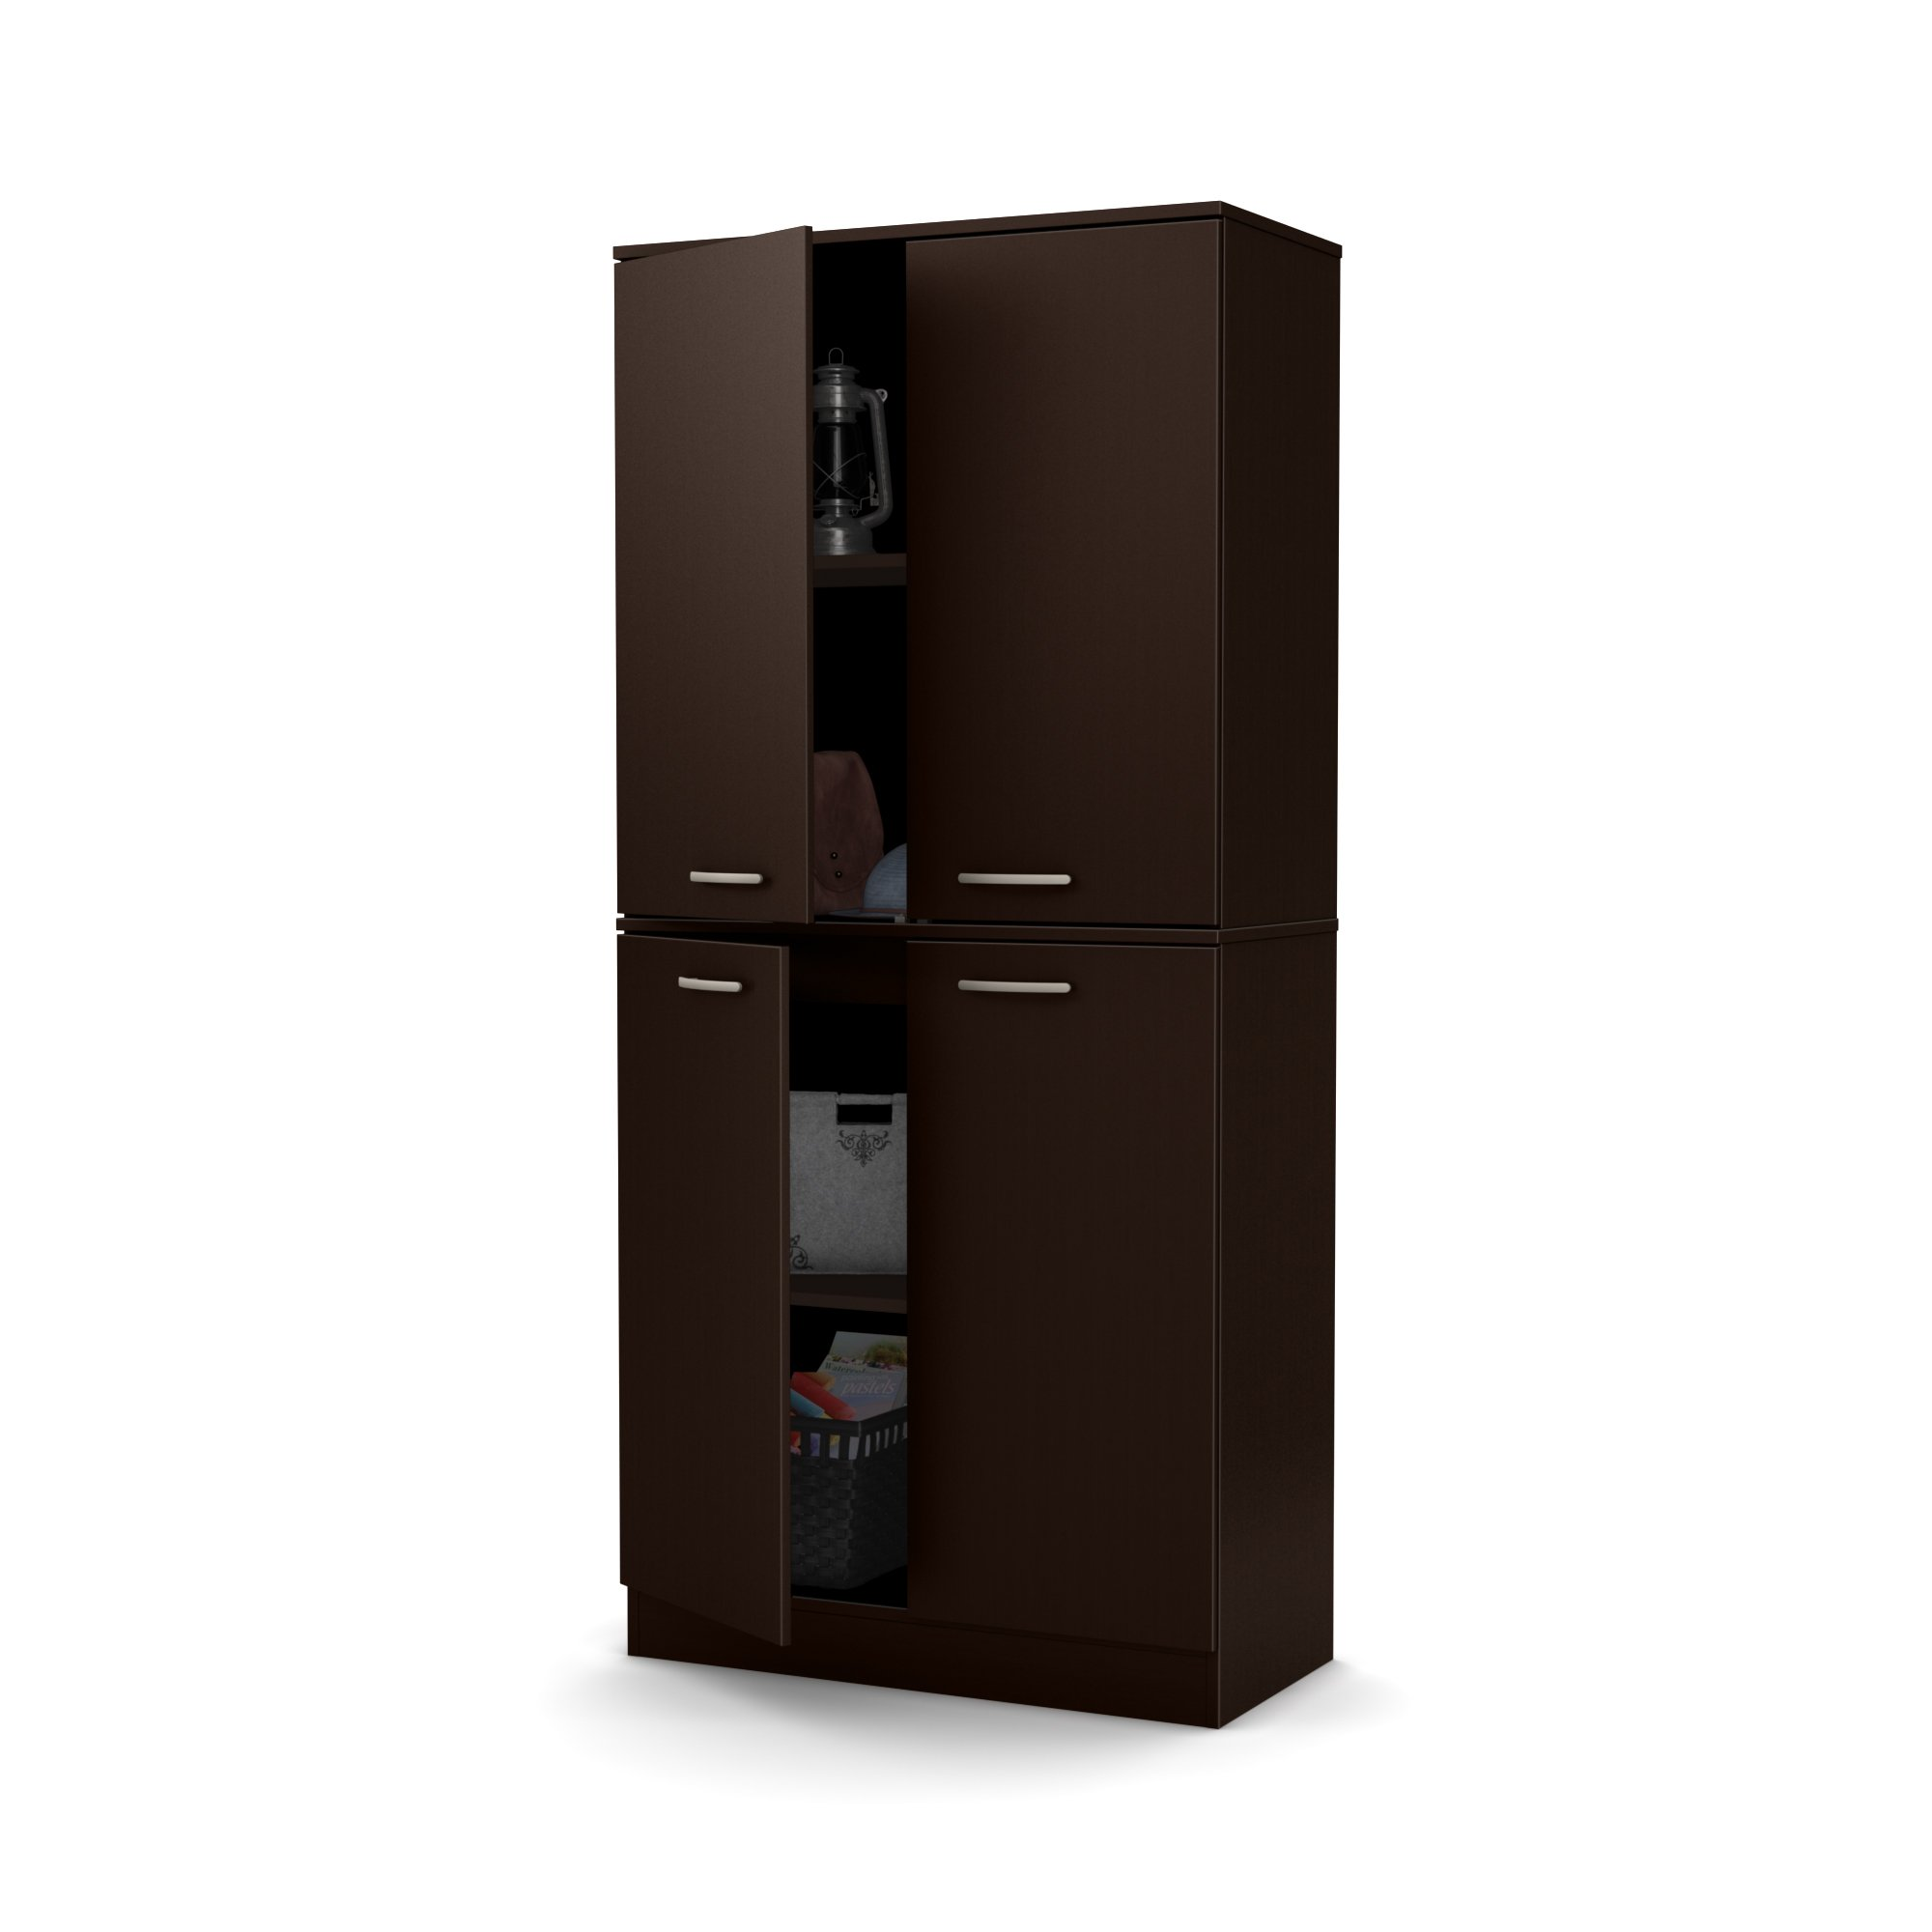 South Shore Axess Tall 4-Door Storage Cabinet with Adjustable Shelves, Chocolate